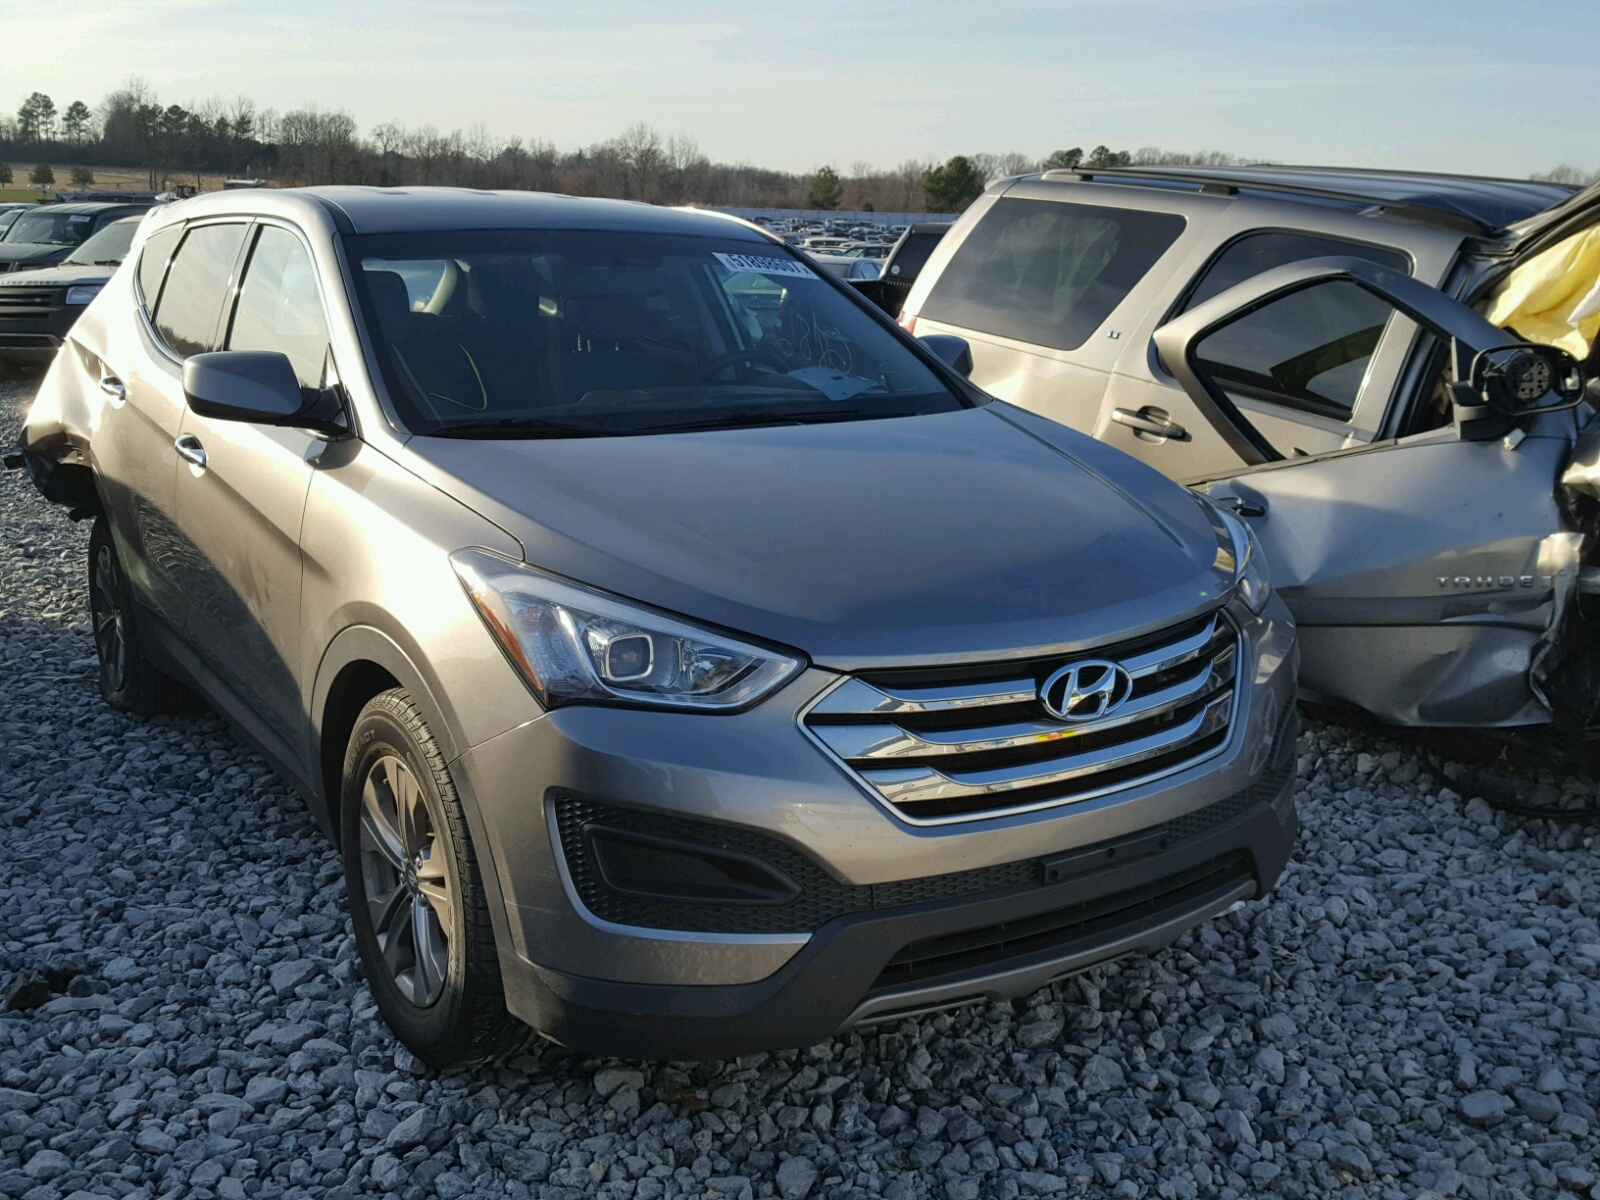 salvage cert in on lot silver sonata sc en greer gls sale copart auctions carfinder auto of hyundai online title